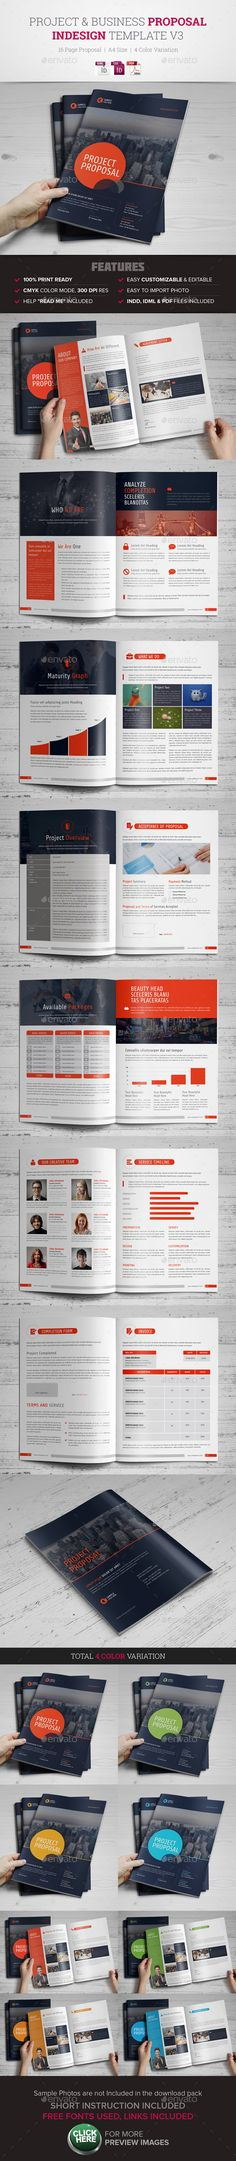 Project & Business Proposal Template v3 - Proposals & Invoices Stationery